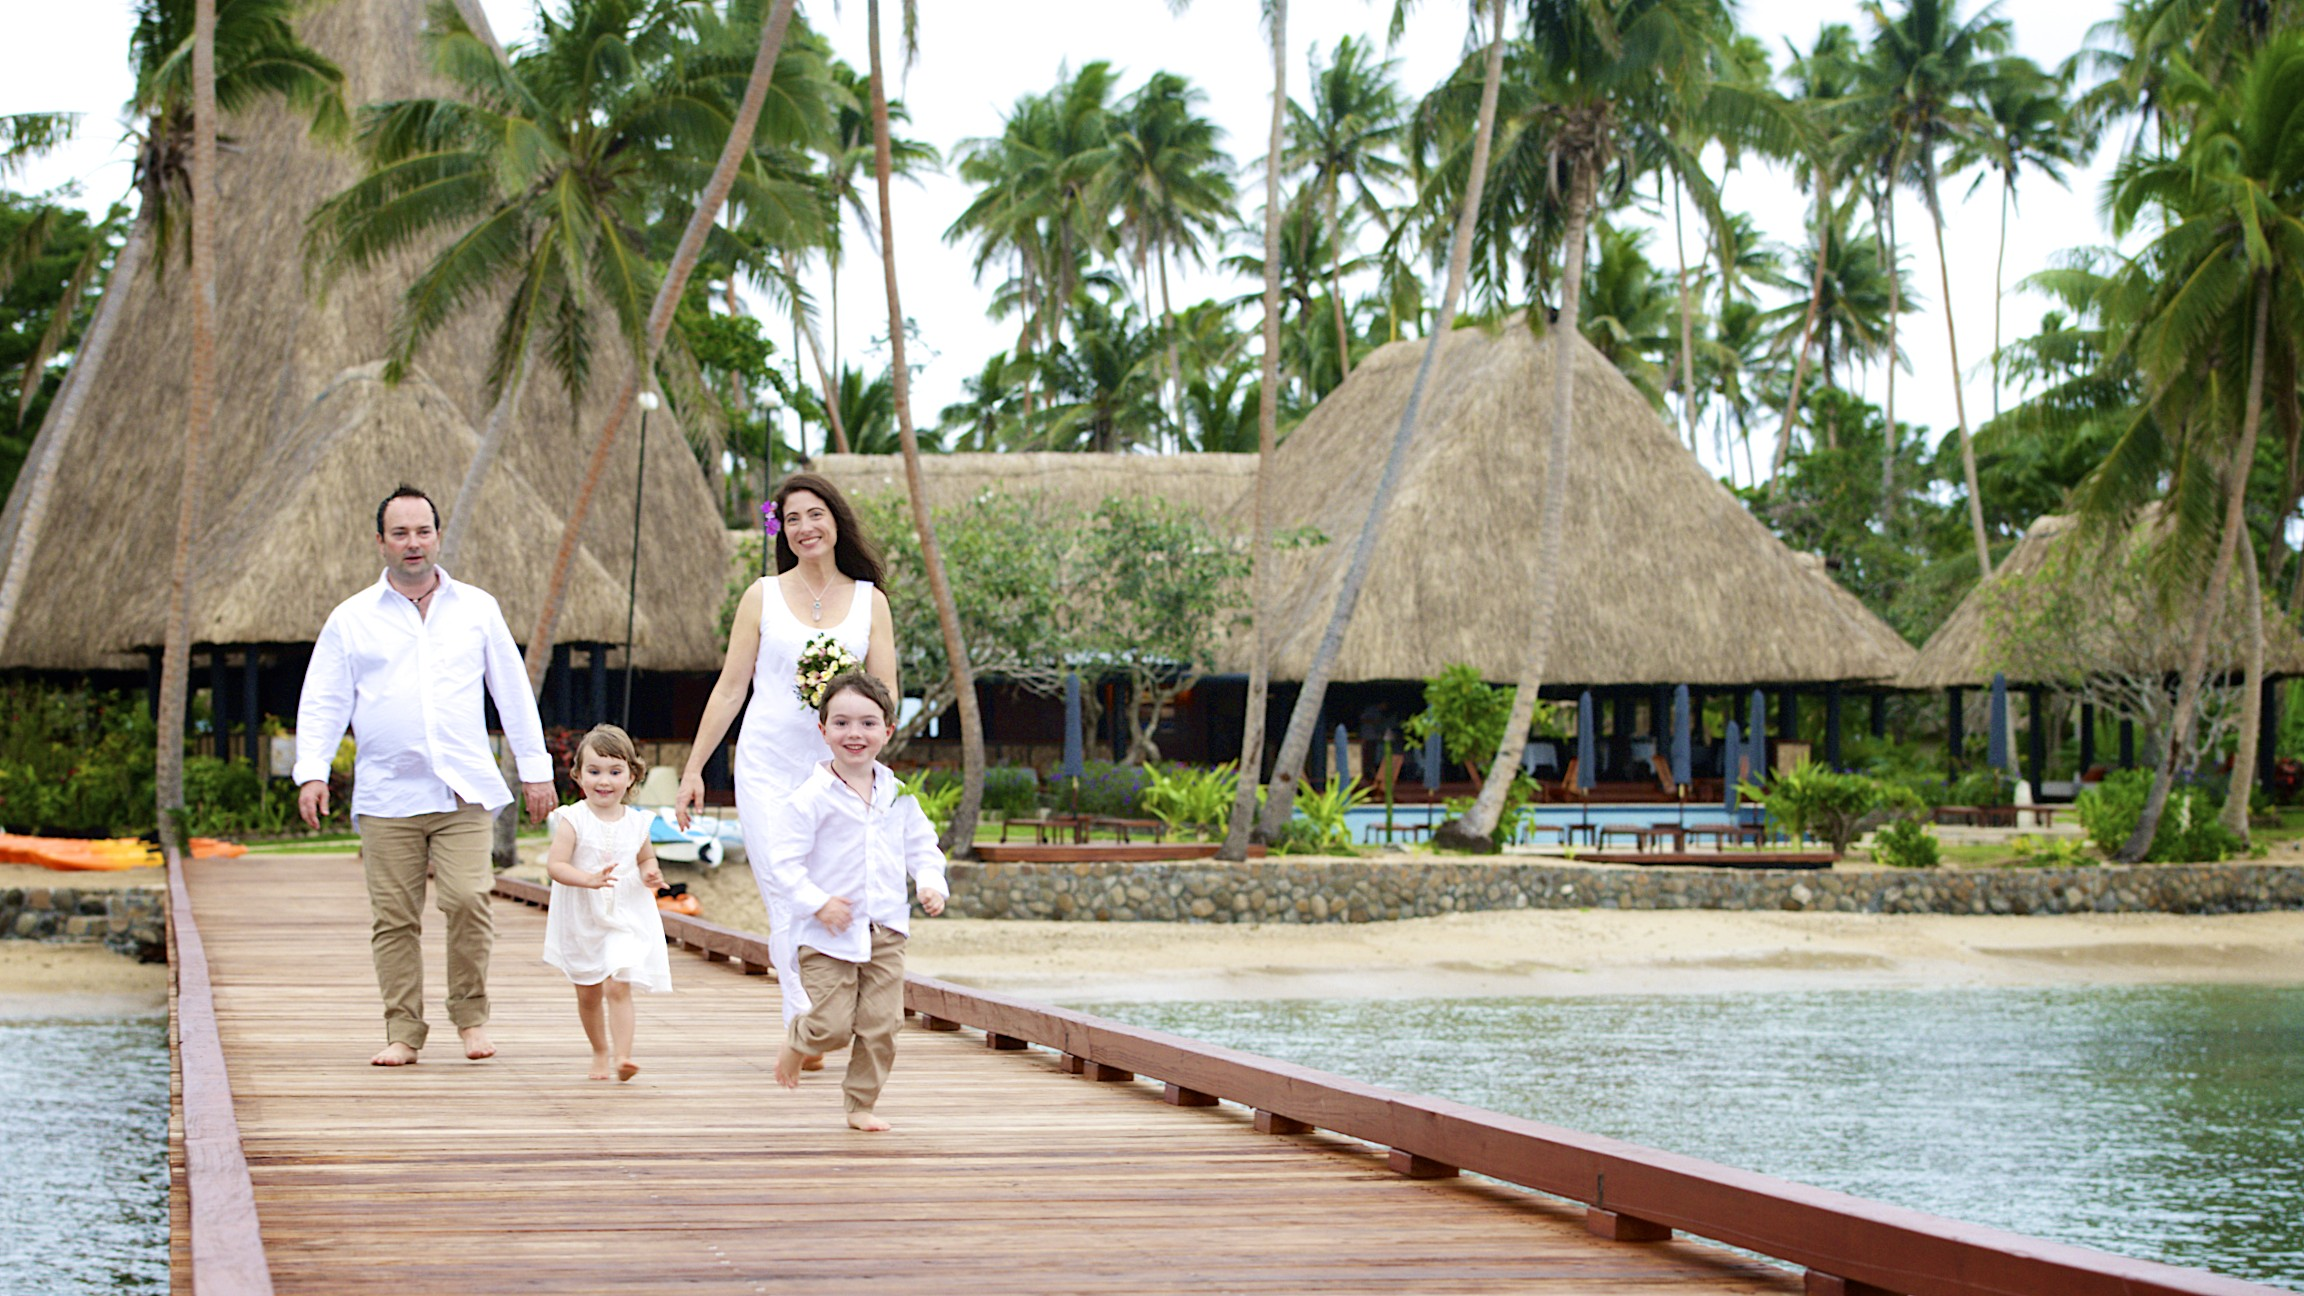 Family time at Jean-Michel Cousteau Resort, Fiji